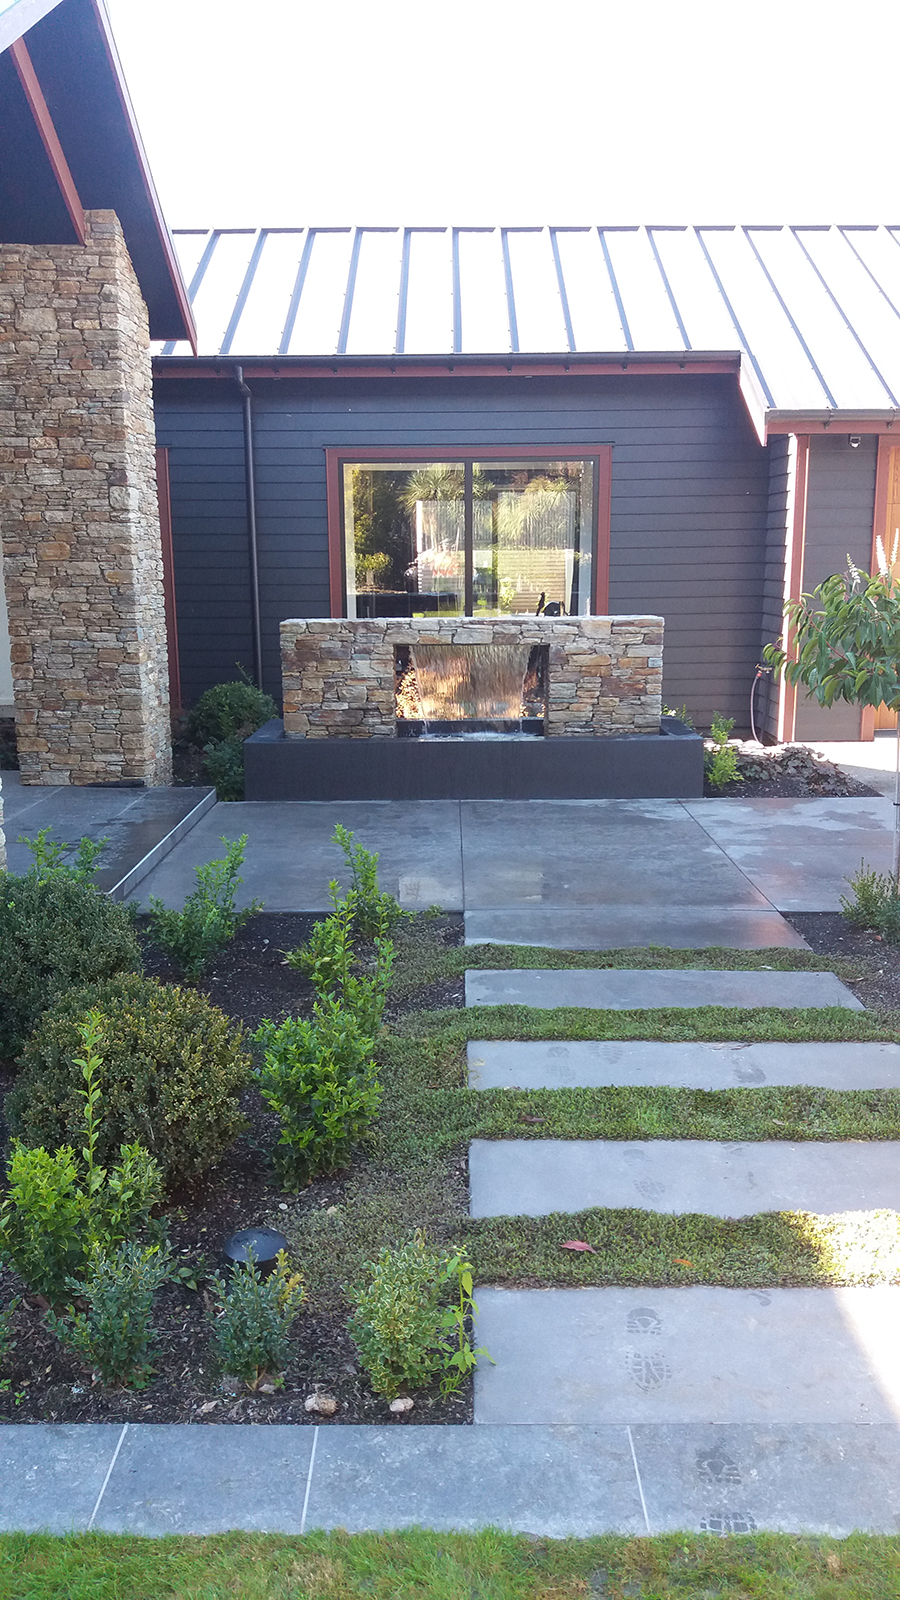 Landscape design construction landscaping canterbury for Landscape construction christchurch